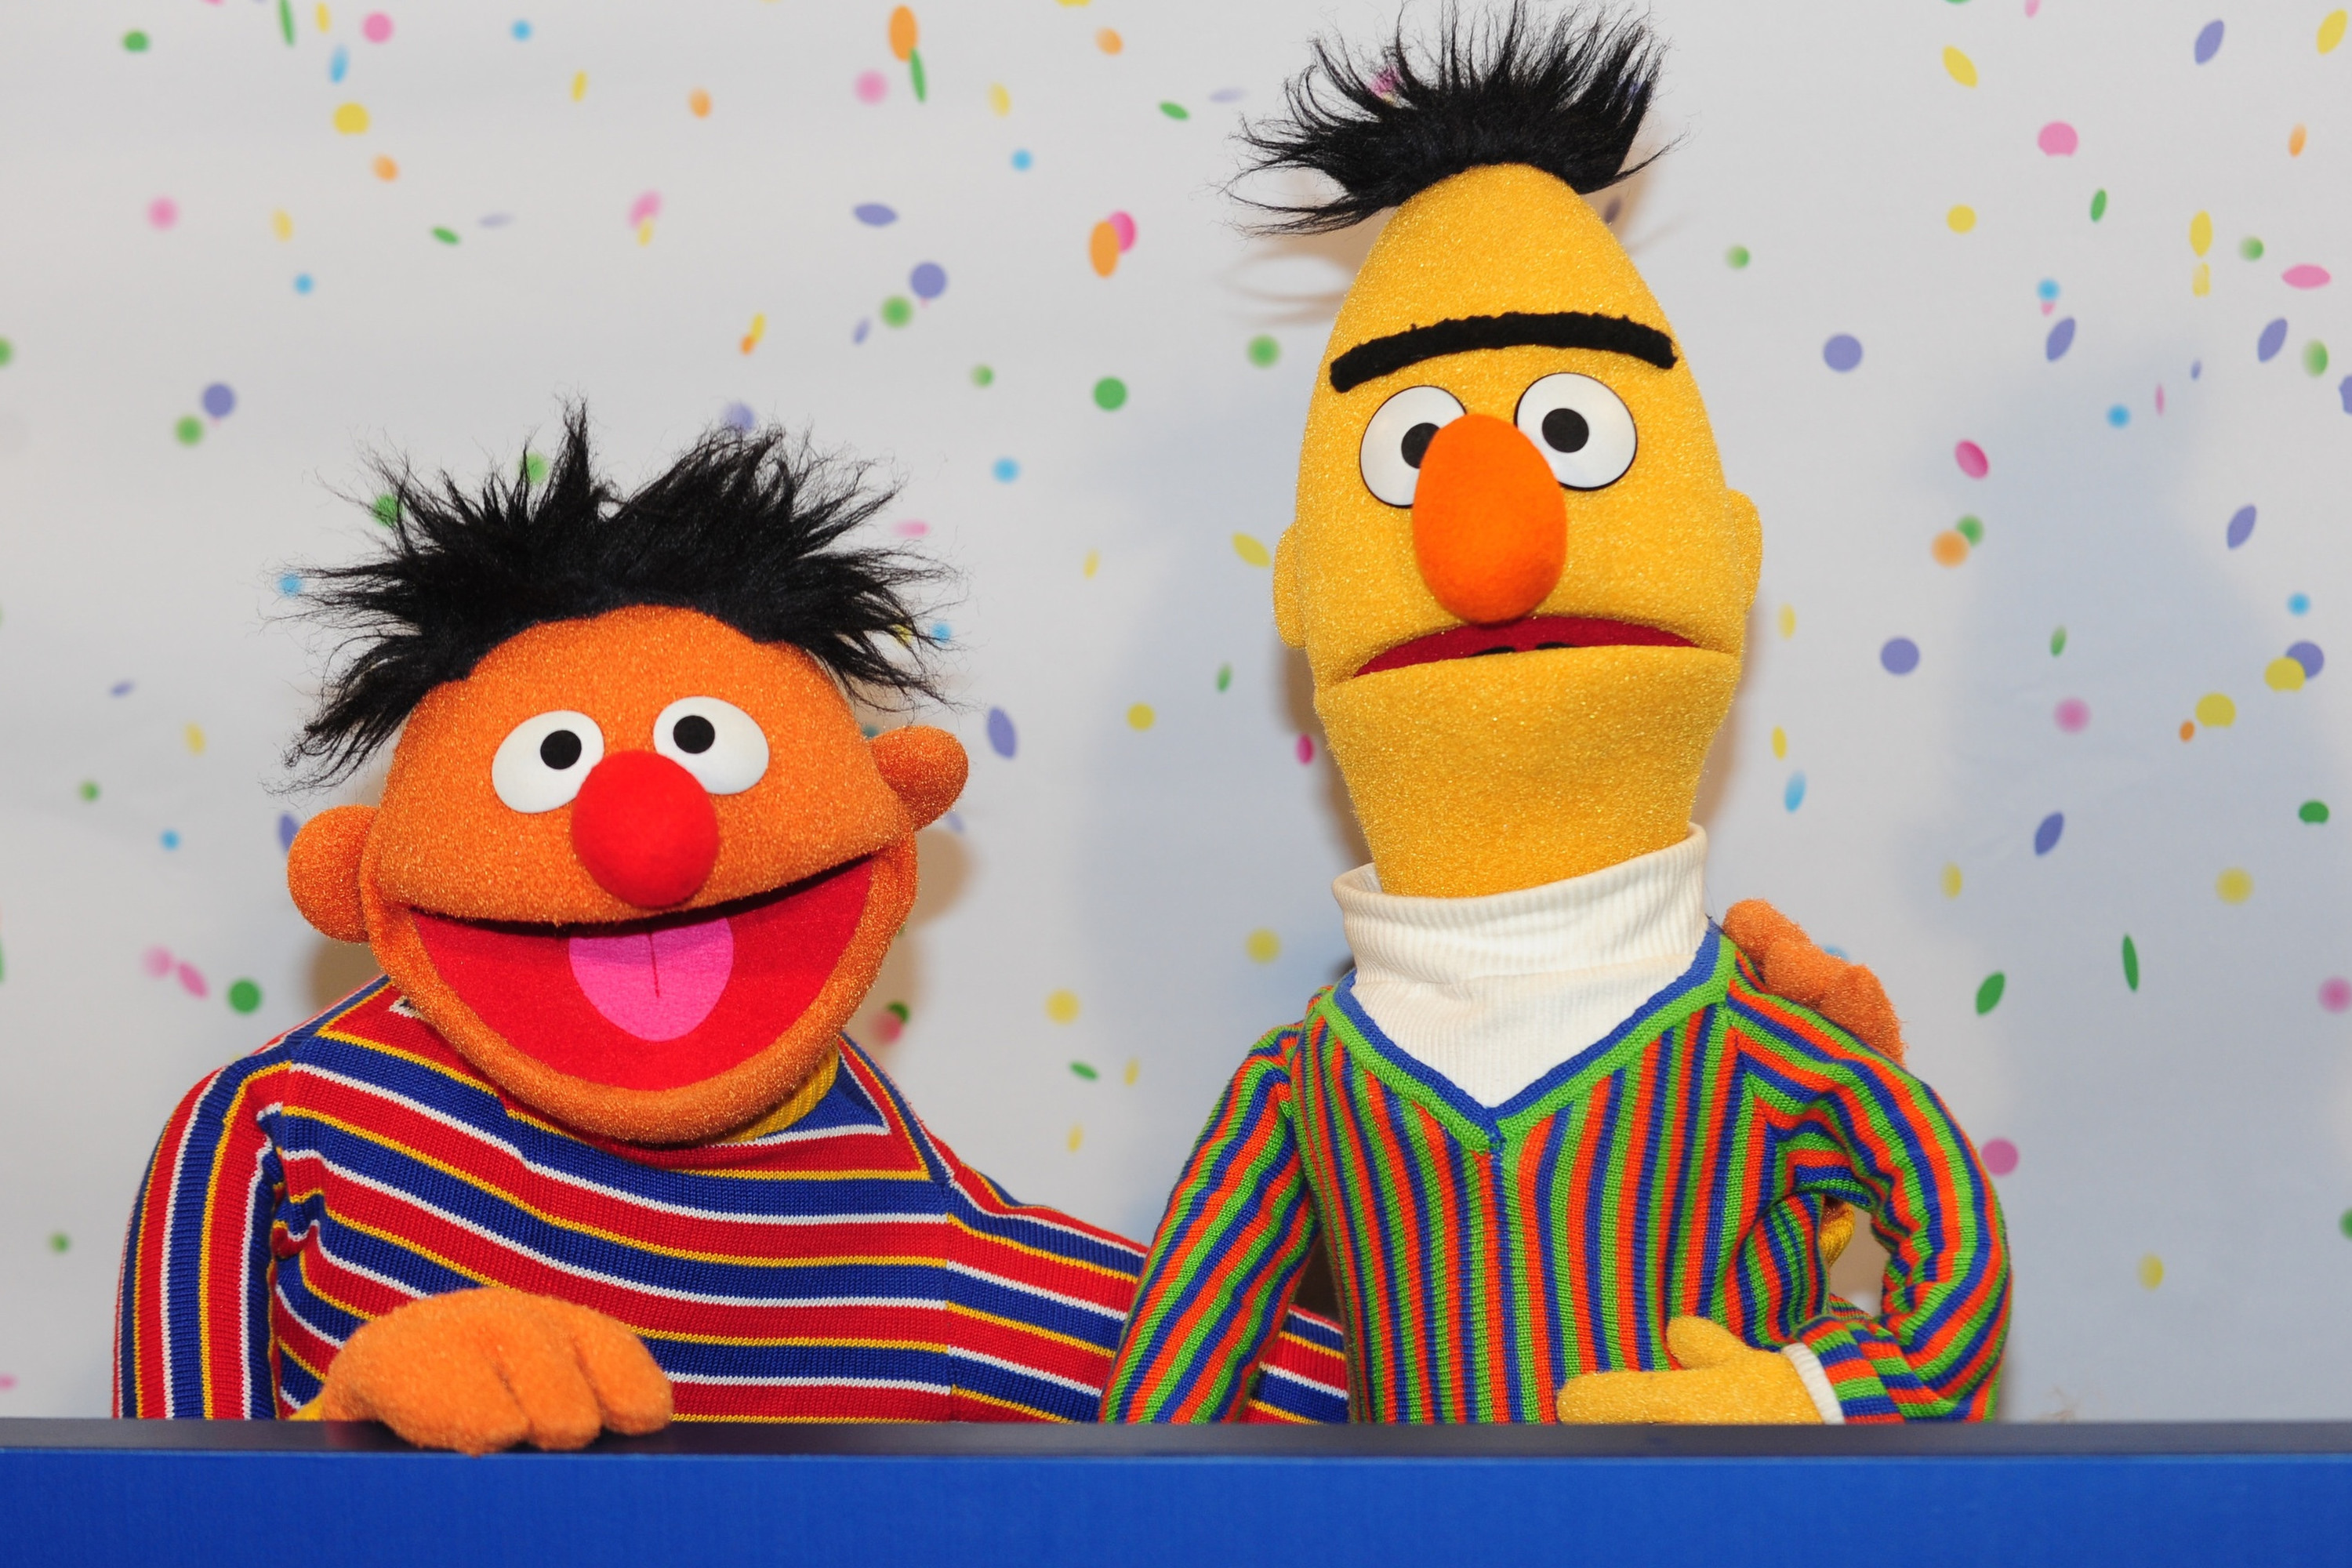 Sesame Street Muppets Ernie and Bert pose for photographs during a press conference on the 40th anniversary of the Sesame Street in Hamburg, Germany, 07 January 2013.